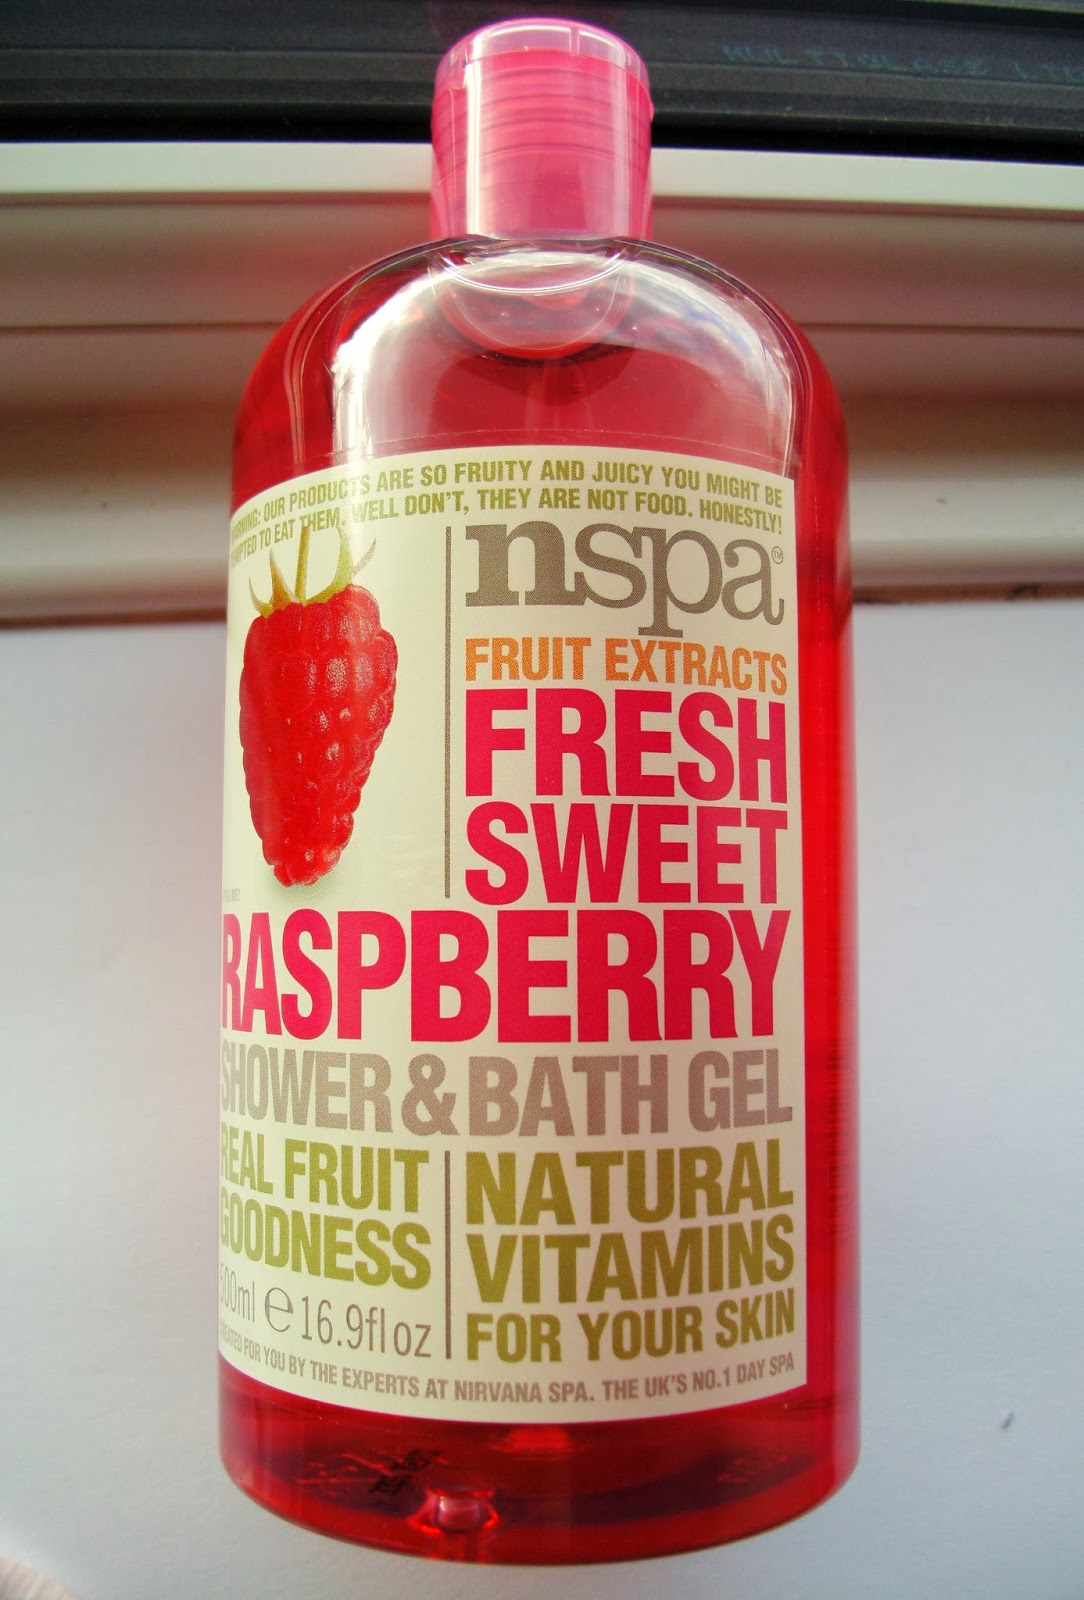 nspa Fruit Extracts Fresh Sweet Raspberry Shower and Bath Gel - 500 ml